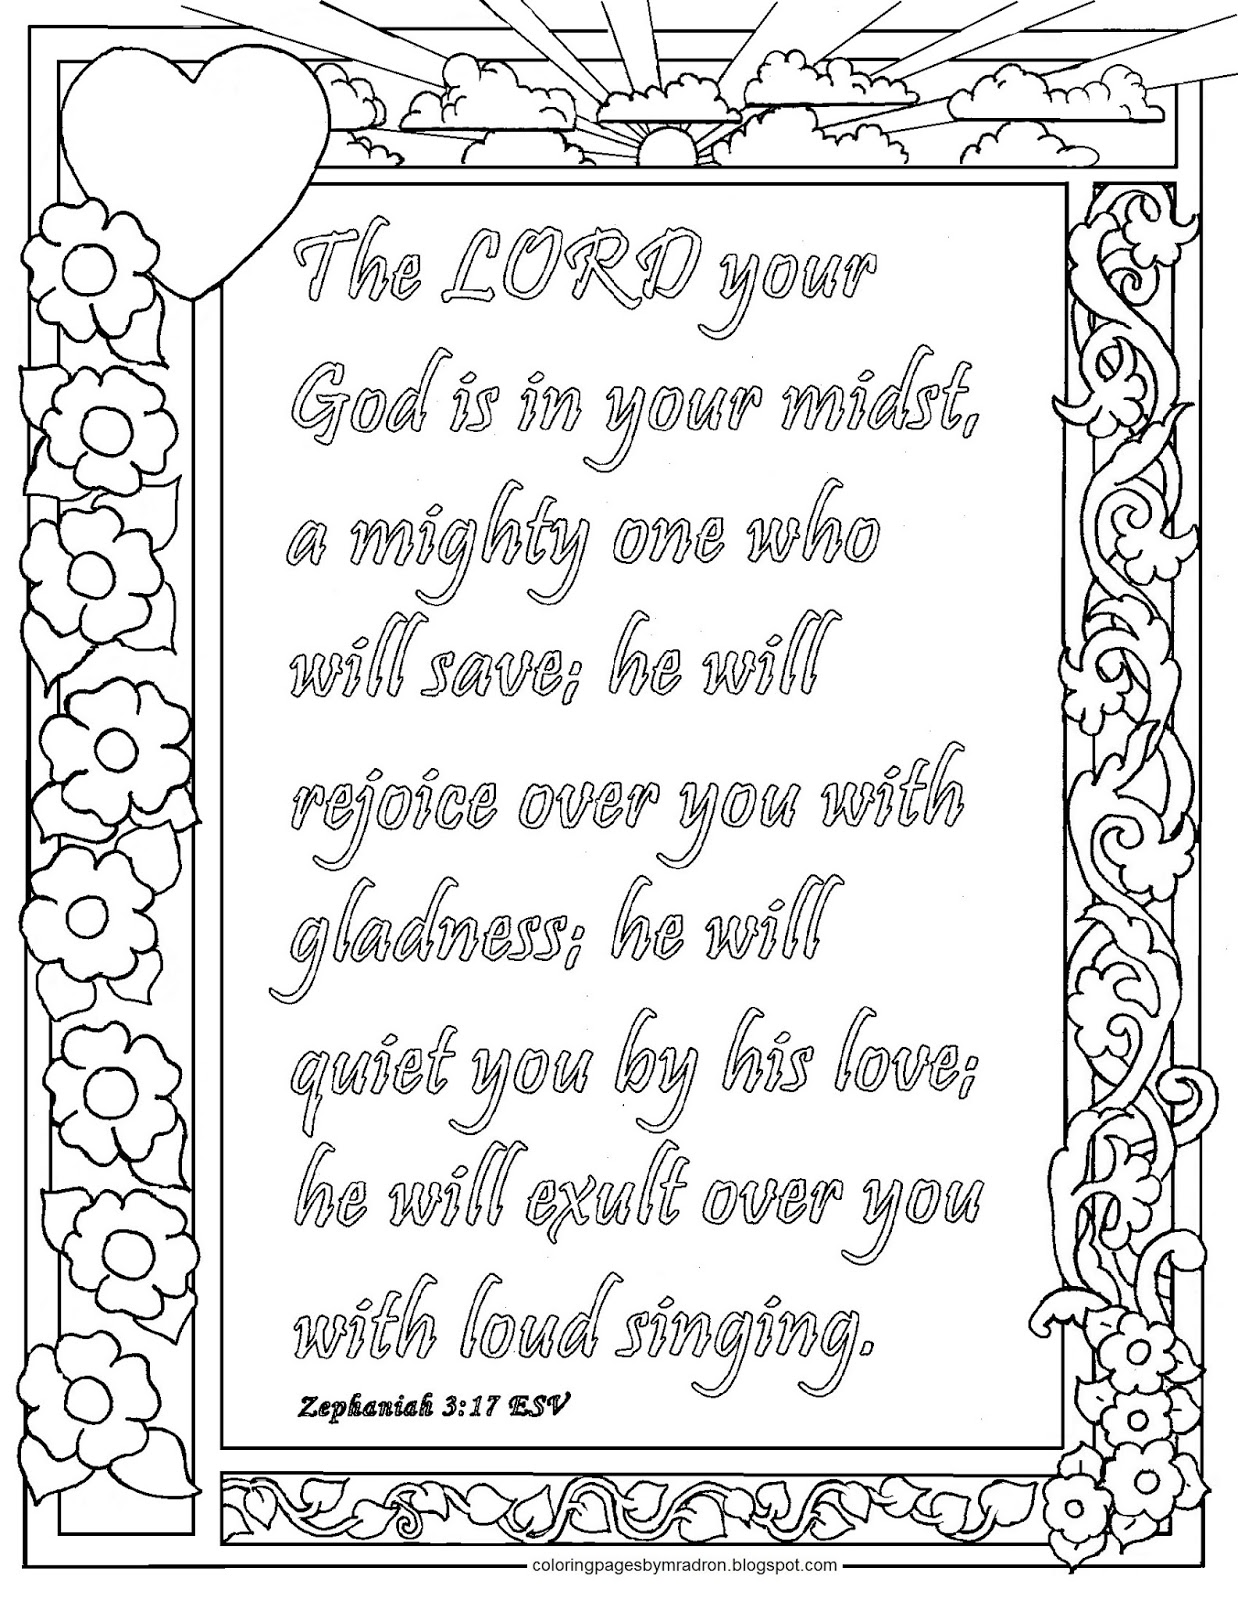 Coloring Pages for Kids by Mr. Adron: Zephaniah 3:17 Print and ...